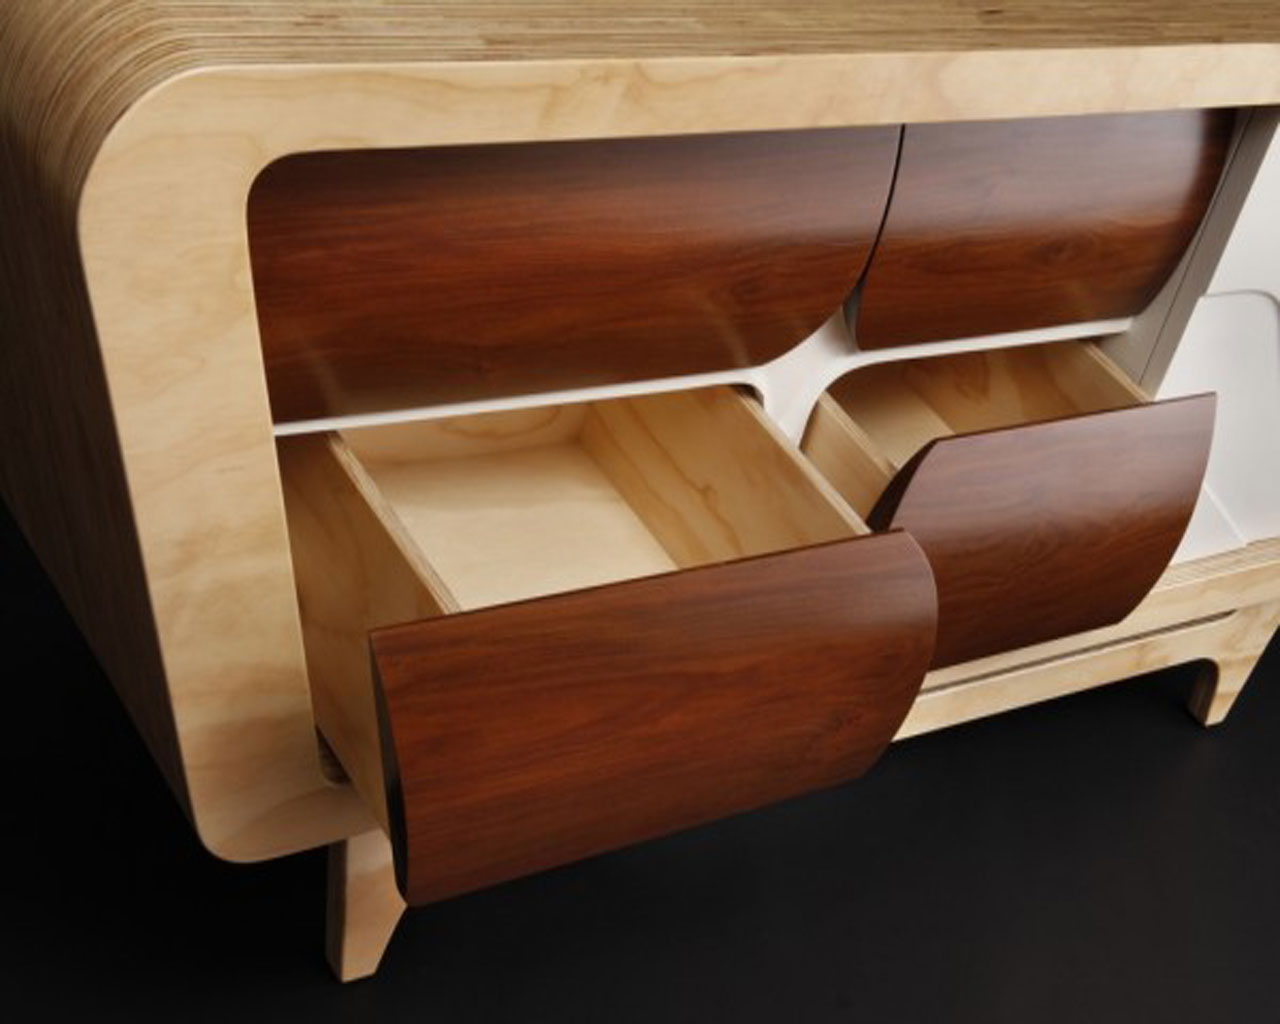 Contemporary furniture designs ideas - Furnitur design ...